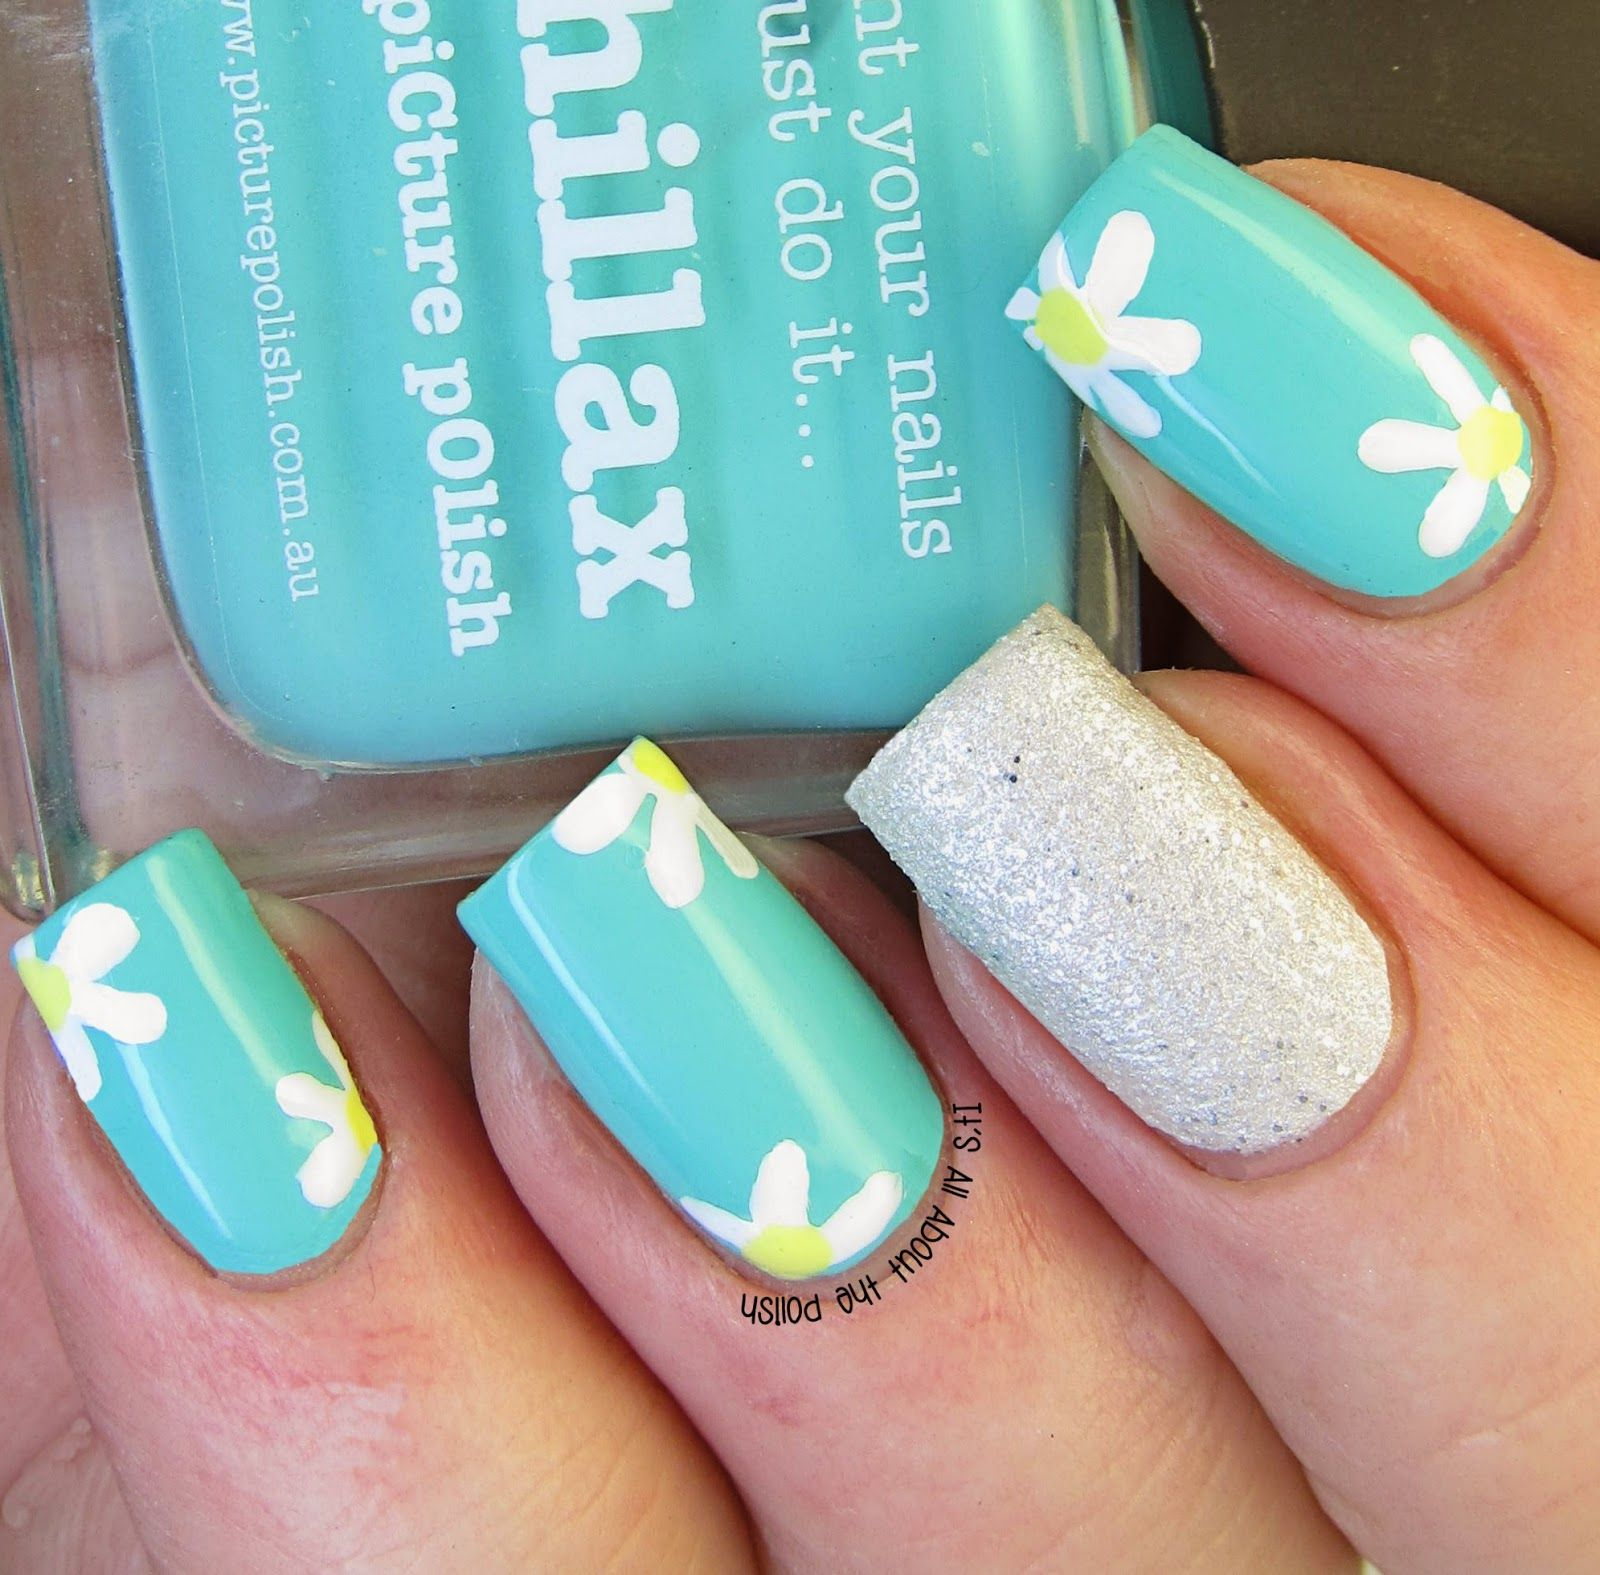 Like the flowered nails